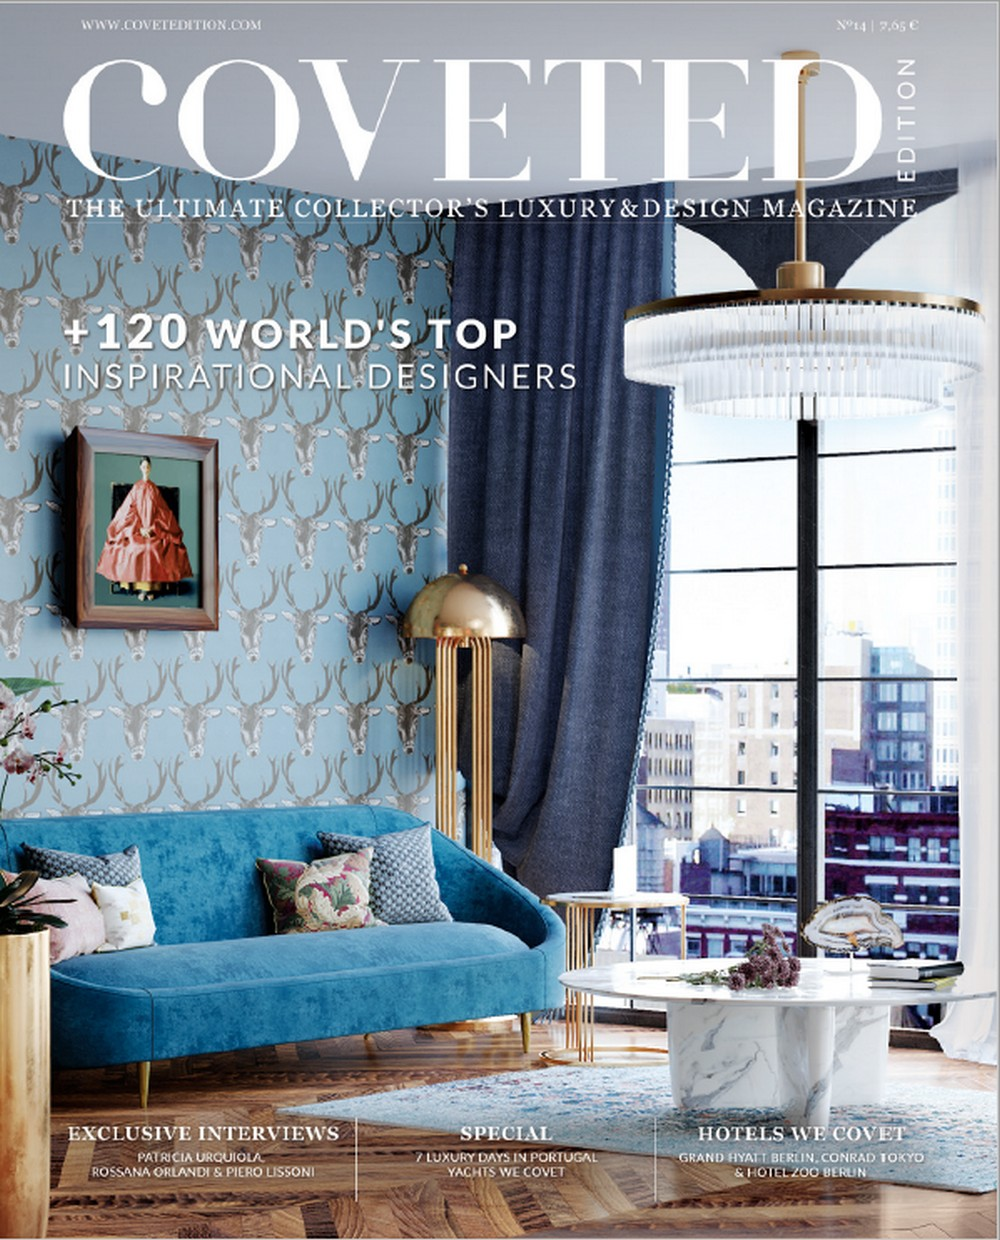 See The Latest Interior Design News And Trends At CovetED 14th Issue interior design See The Latest Interior Design News And Trends At CovetED 14th Issue See The Latest Interior Design News And Trends At CovetED 14th Issue